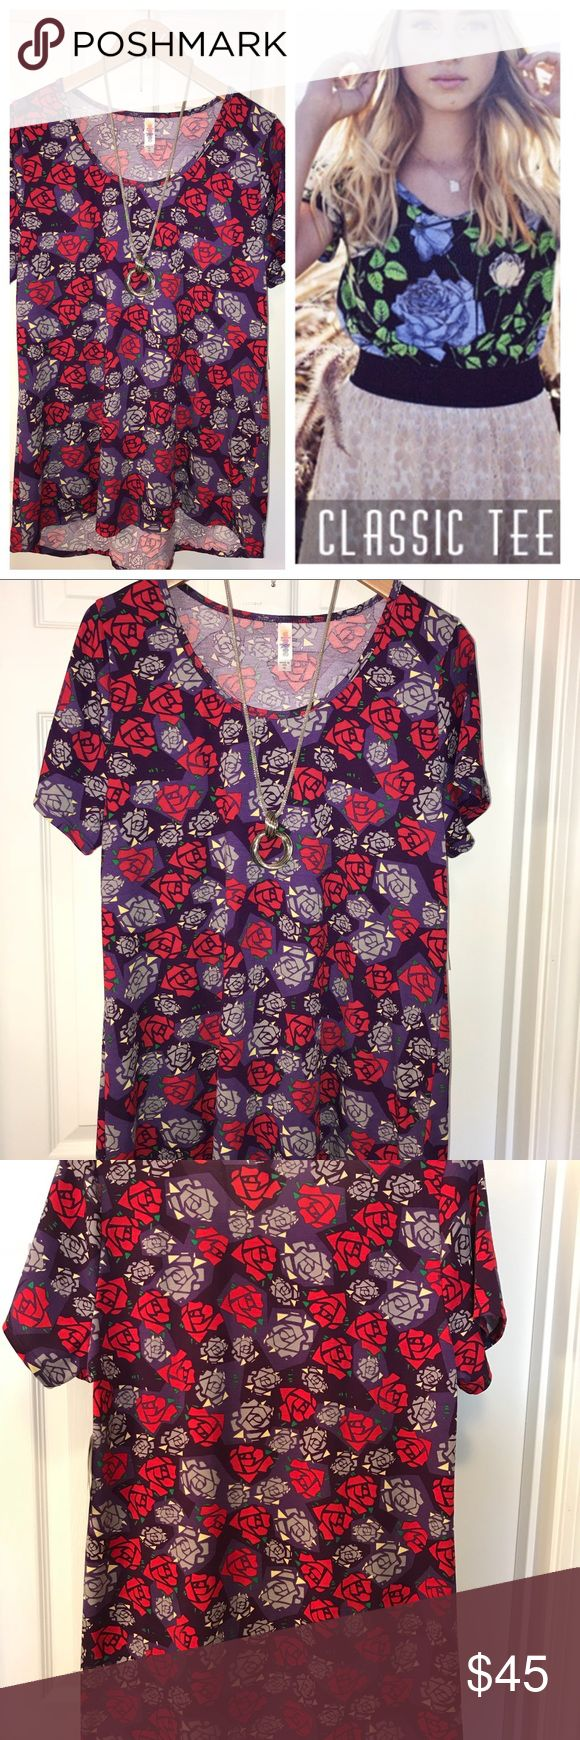 LuLaRoe XL Disney Roses Classic T 🦄 🌹 If you've spent any amount of time in my closet, you know I'm a HUGE floral/rose print fan. This XL Classic T does not disappoint! How gorgeous is this Disney Rose print?! I'm obsessed! AND it features my absolute favorite color, purple! Both dark and light shades of purple, vibrant red, green and hints of white accents. Perfect to be paired with favorite solid leggings (I have an awesome pair of TC Sky Blue Available!) or your favorite pair of jeans…